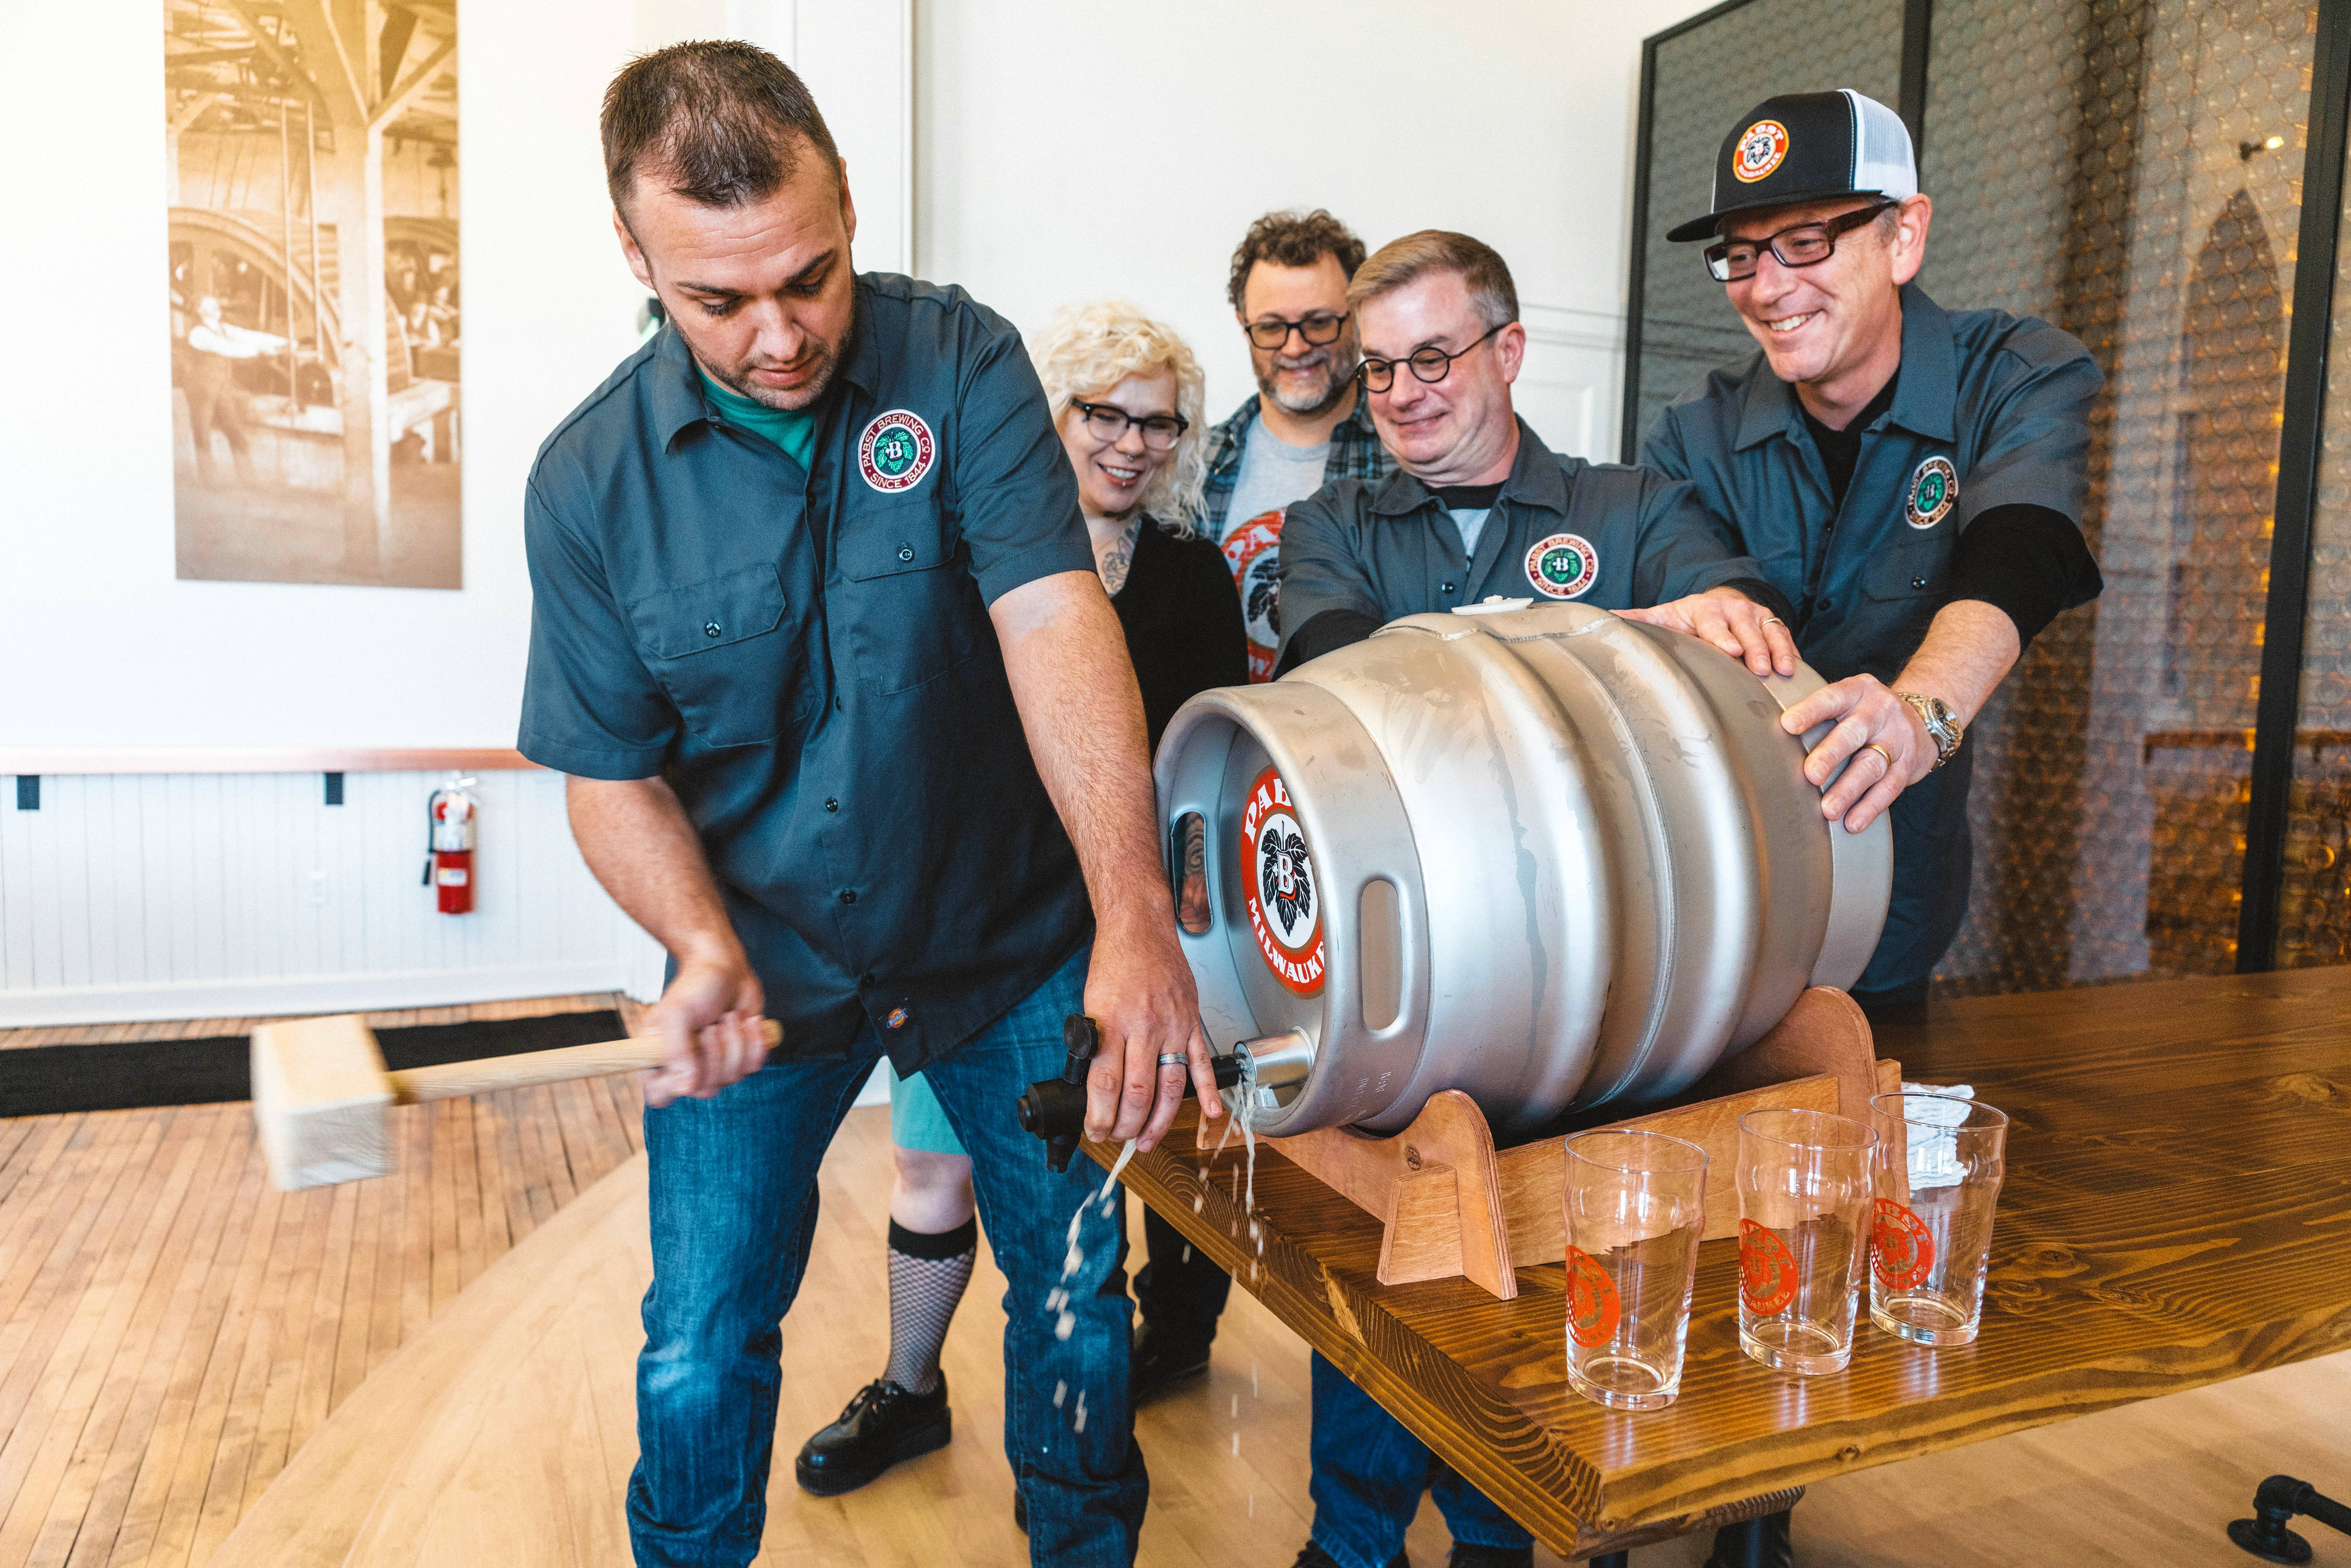 Pabst Milwaukee Brewery will kick off summer with a grand opening street festival in Milwaukee featuring live music, an art gallery, games and food along with Pabst Milwaukee Brewery beer Saturday, May 13.